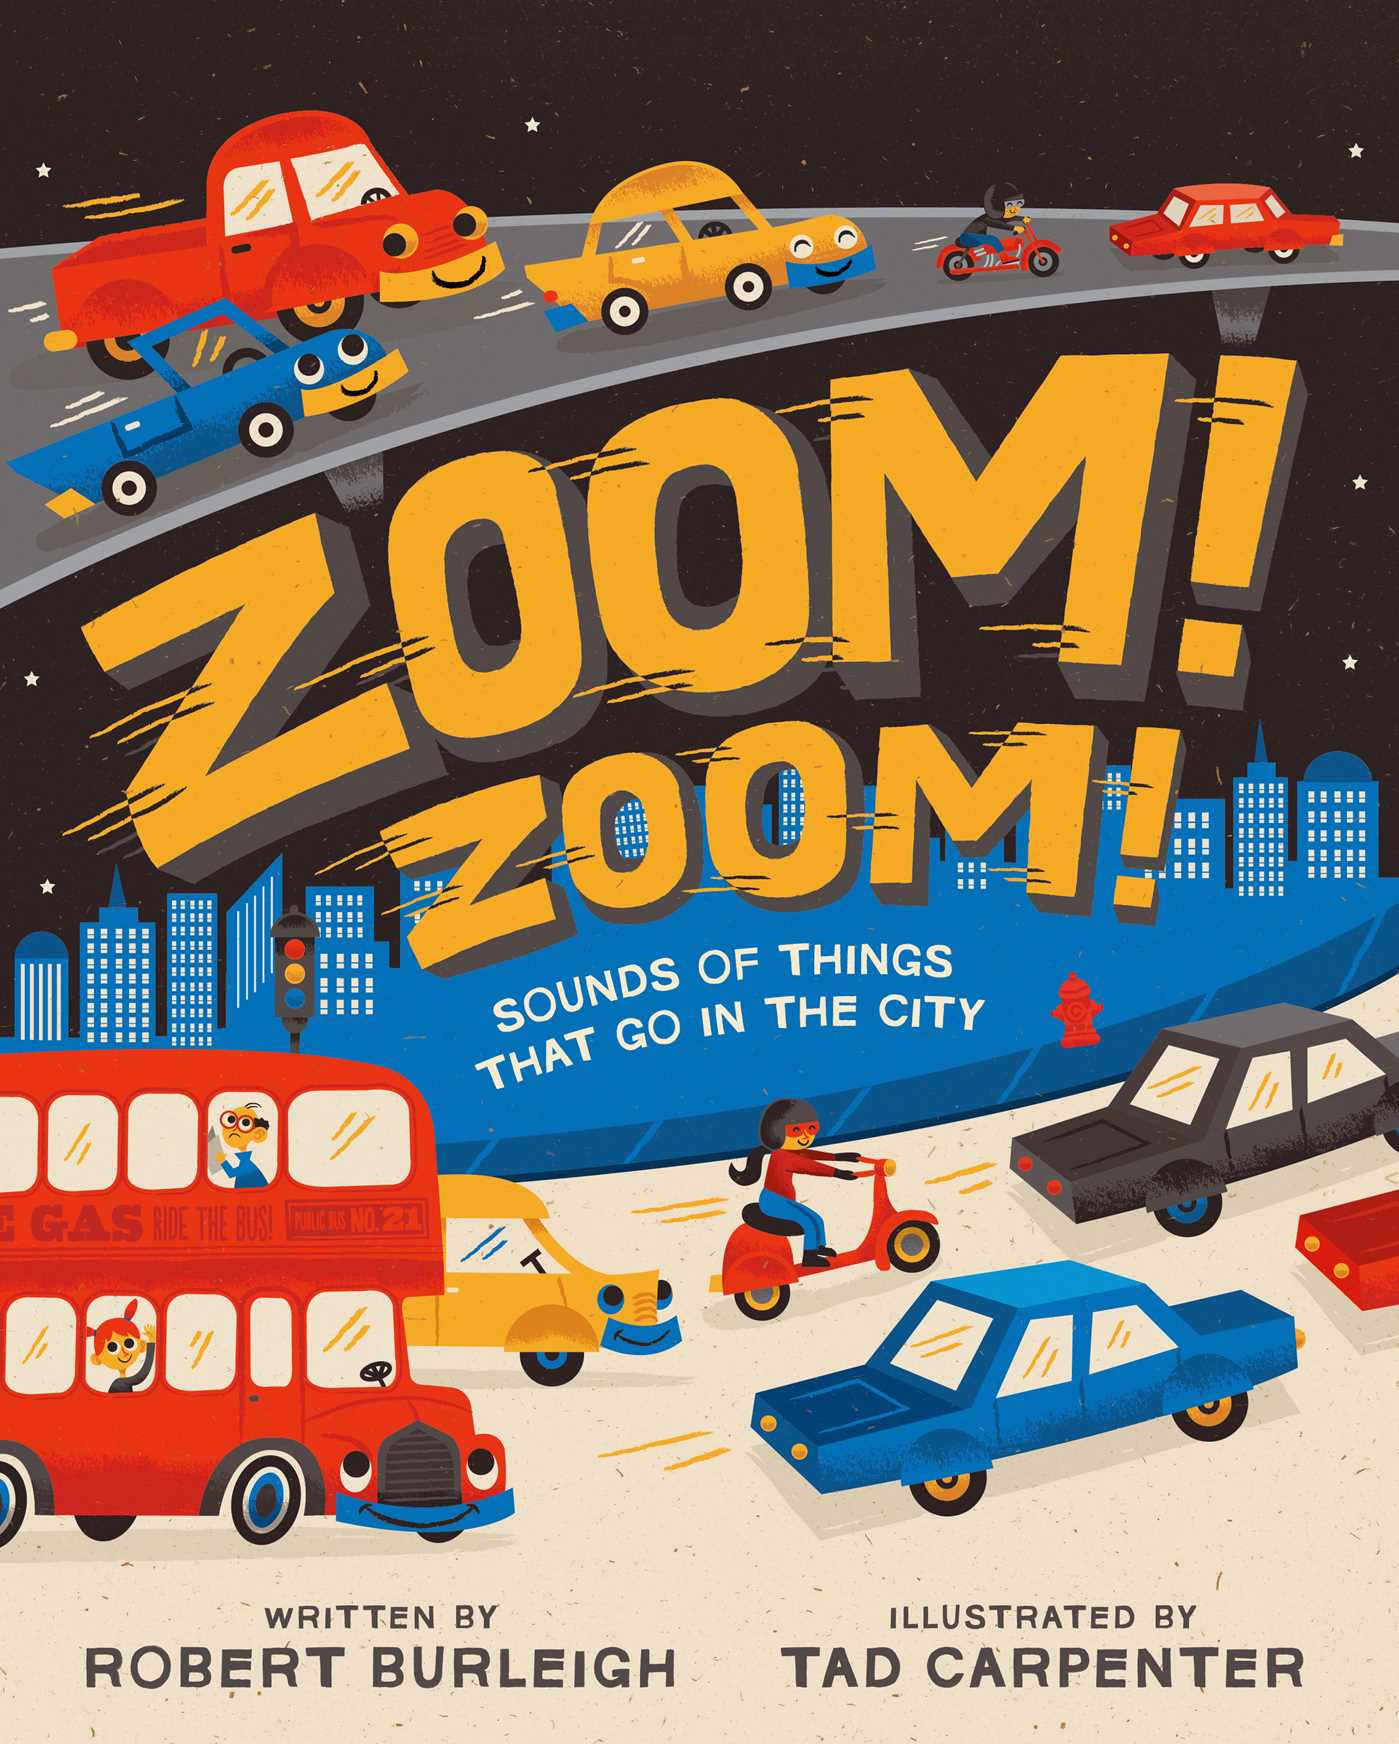 Zoom! Zoom! | Book by Robert Burleigh, Tad Carpenter | Official ...